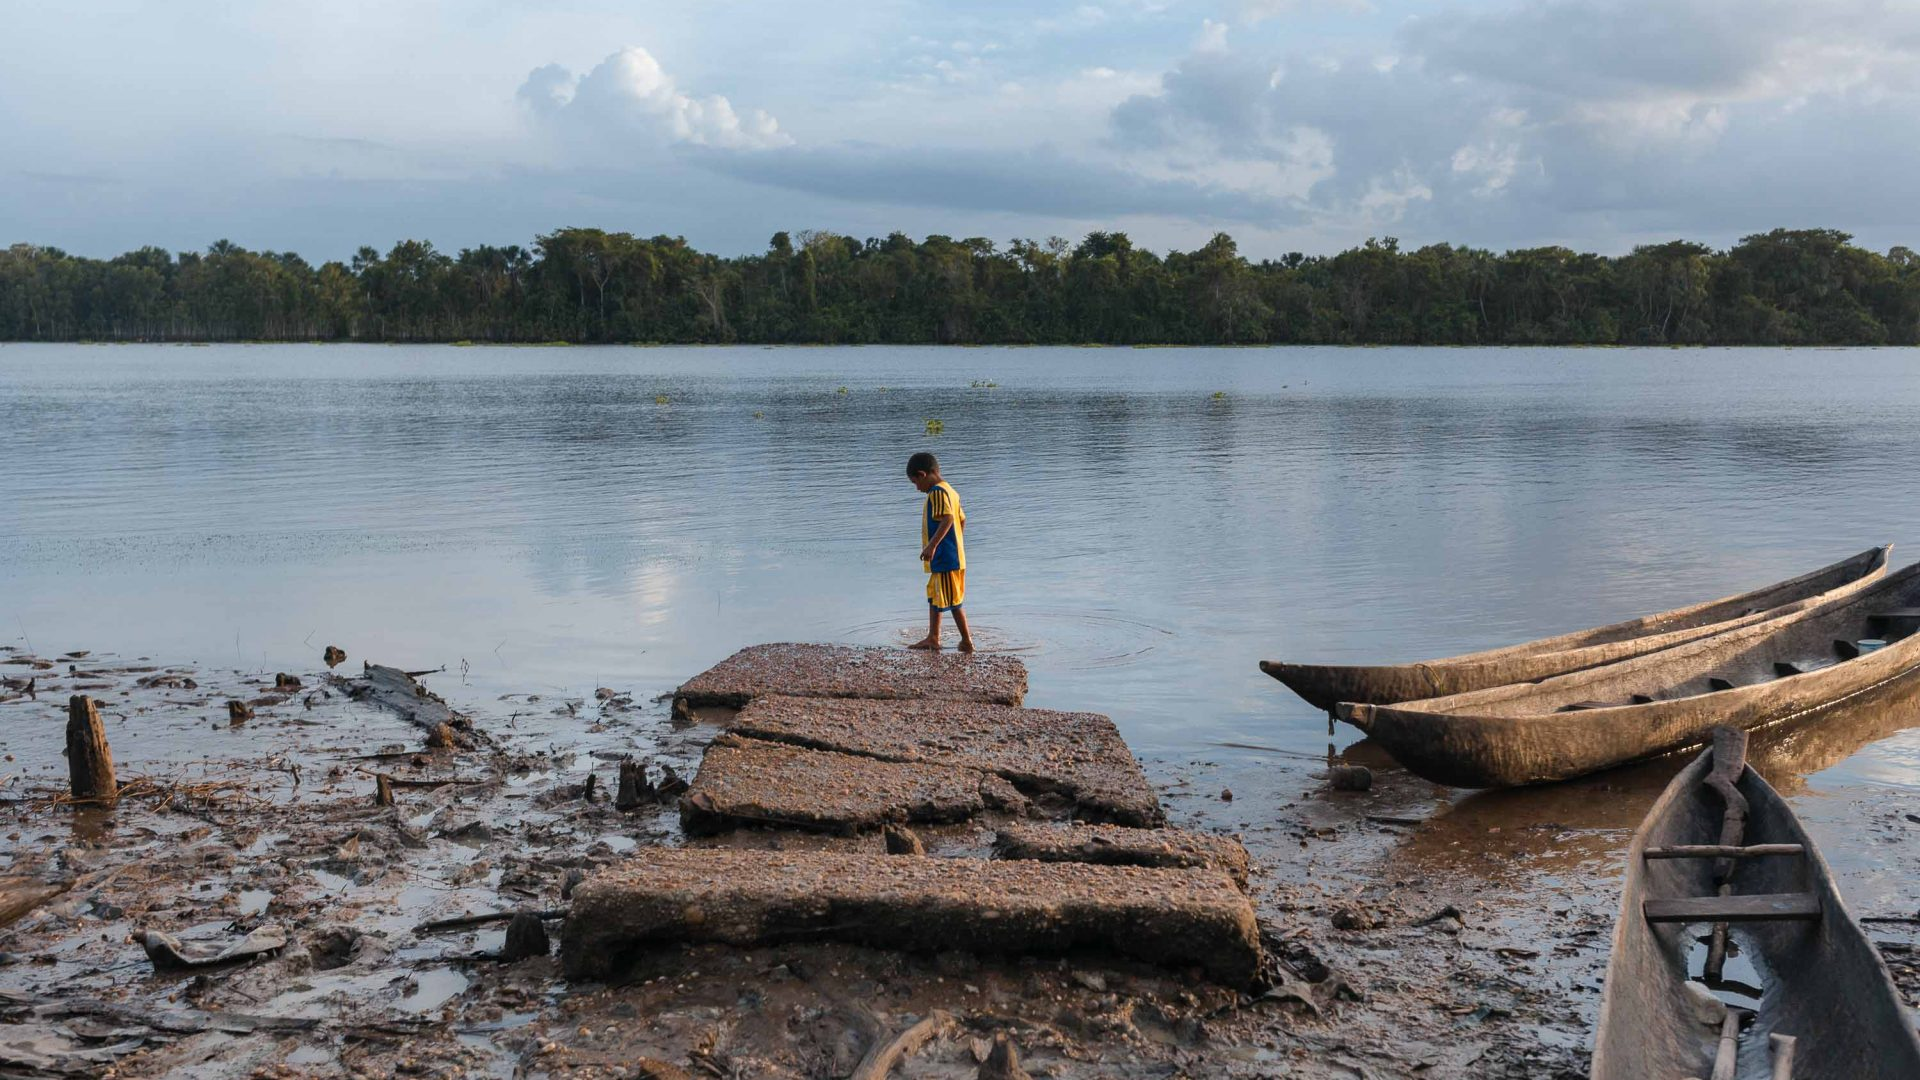 A Warao child walks on the remains of a concrete pier in the Orinoco River, Venezuela.